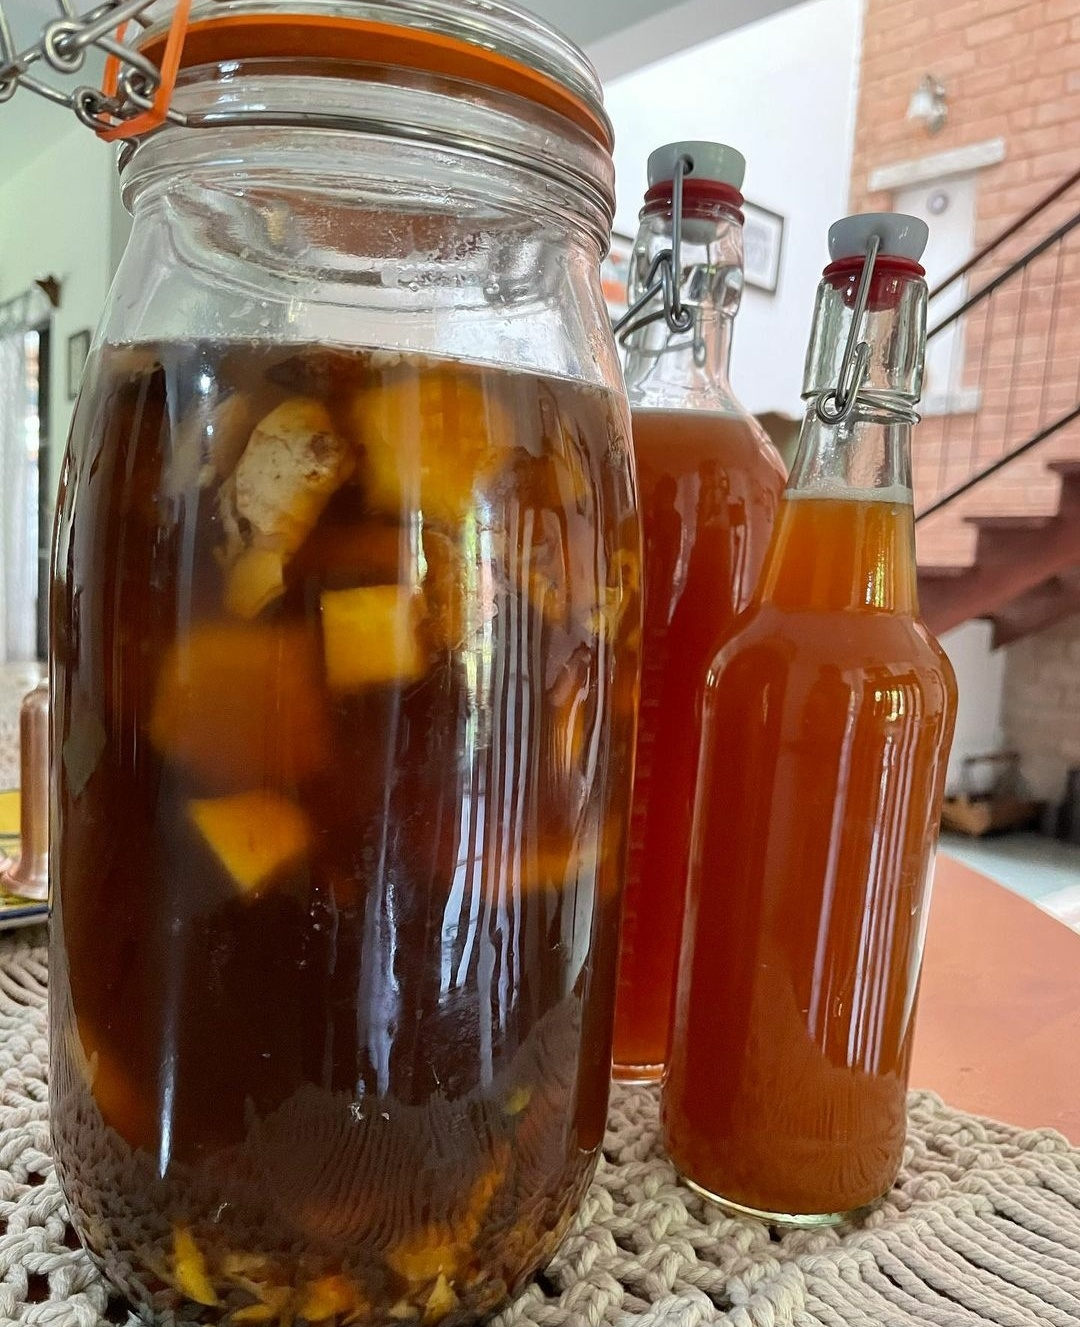 Tepache - Fermented Pineapple Drink